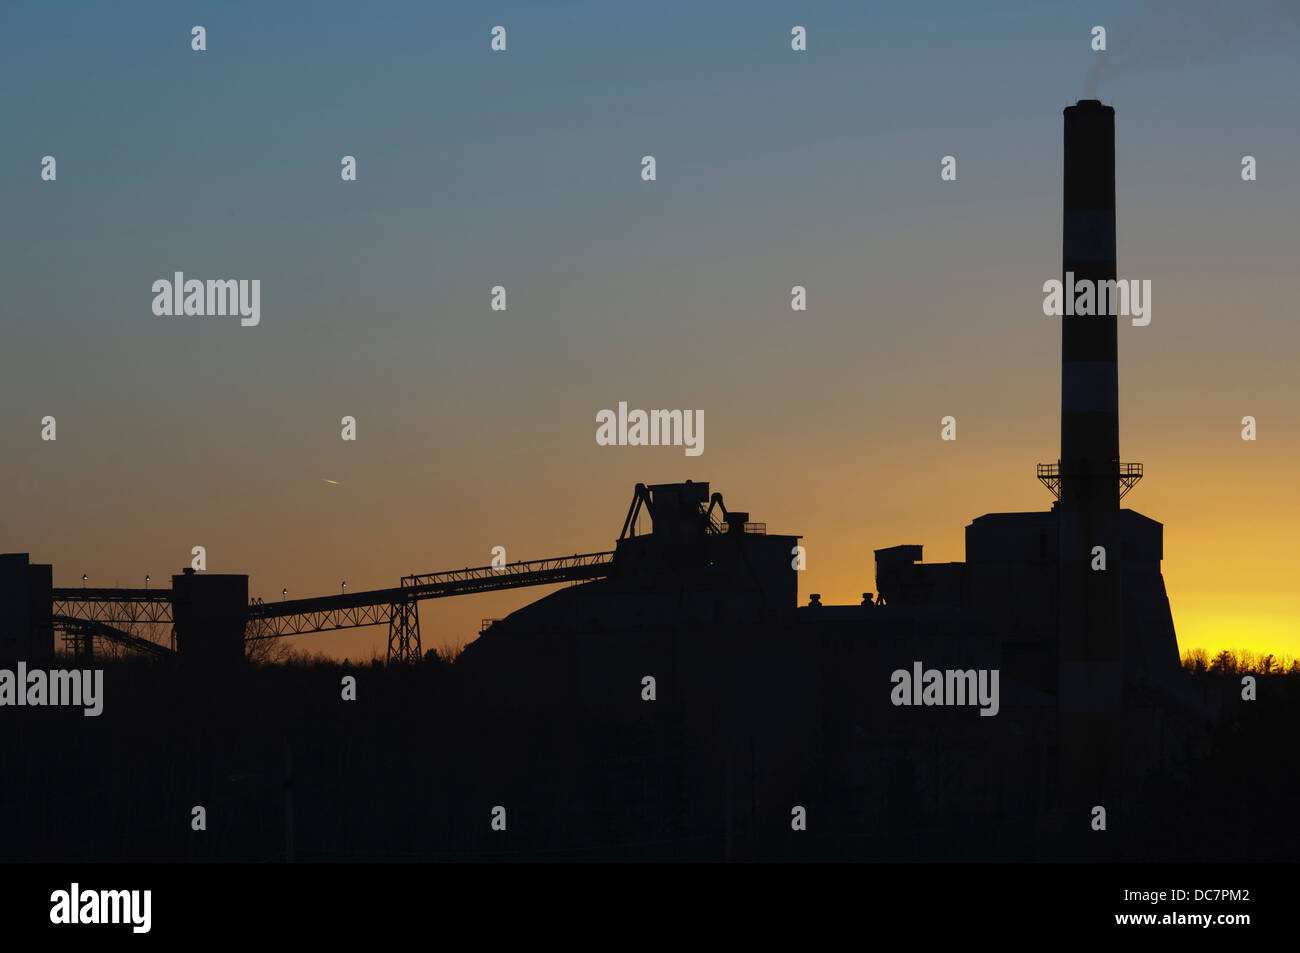 Silhouetted sunset view of industrial plant - Stock Image